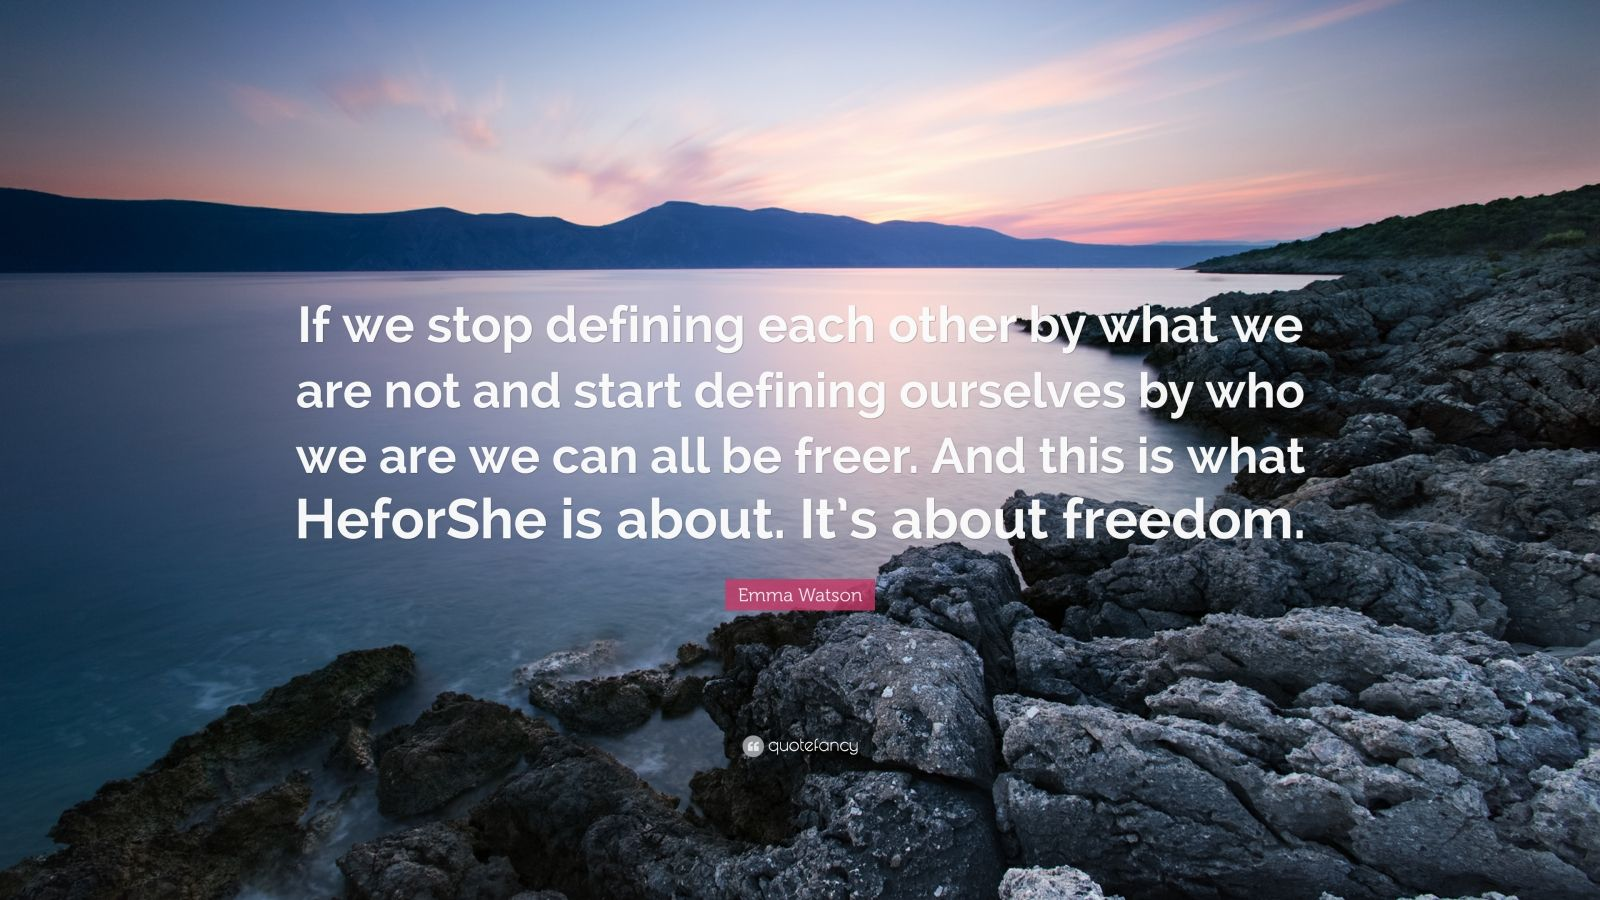 """Emma Watson Quote: """"If we stop defining each other by what we are not and start defining ourselves by who we are we can all be freer. And this is what HeforShe is about. It's about freedom."""""""